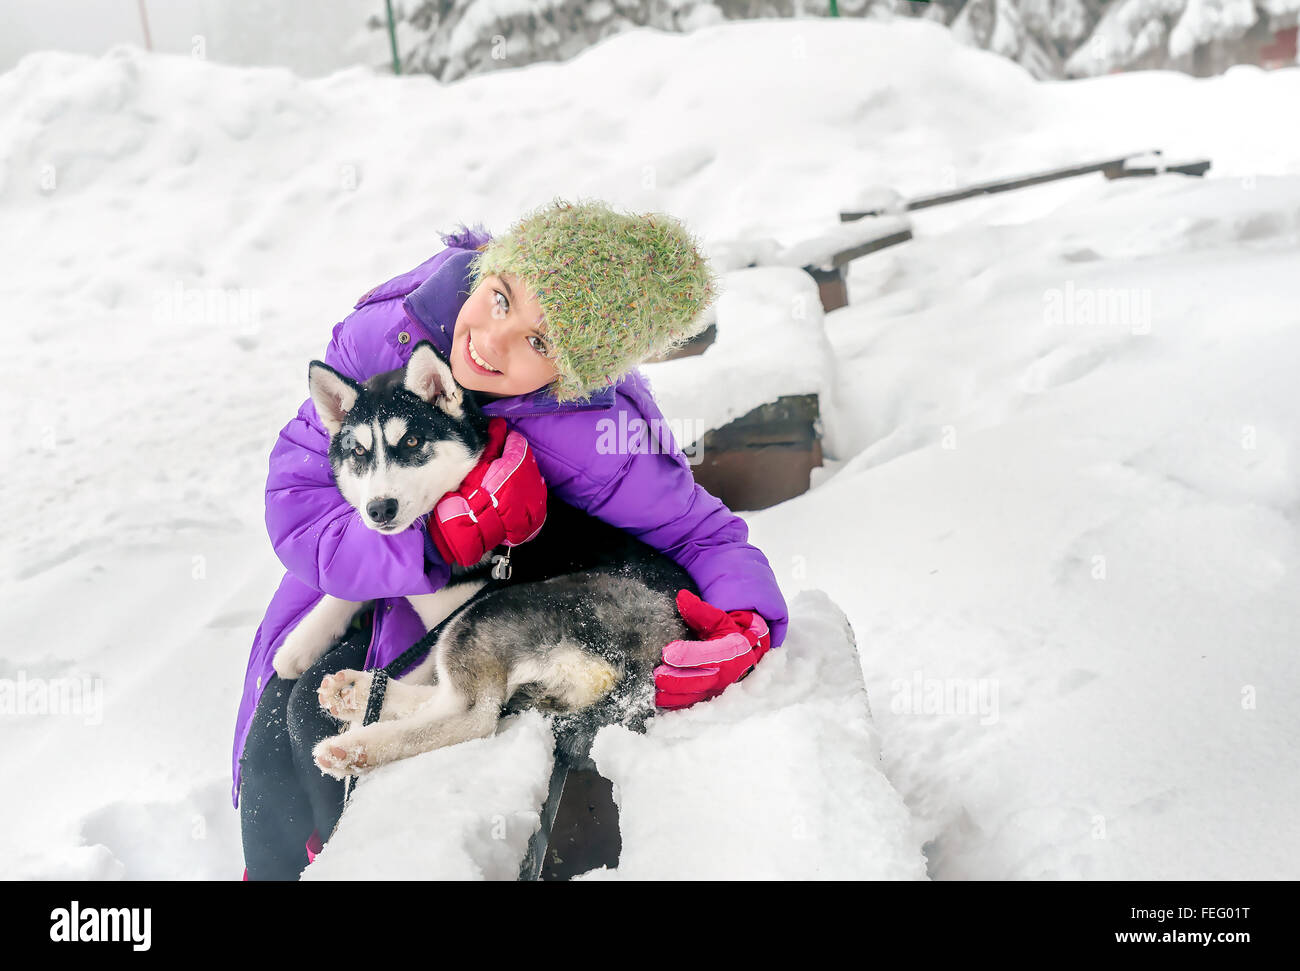 Happy little girl holding her puppy dog husky on the snow - Stock Image